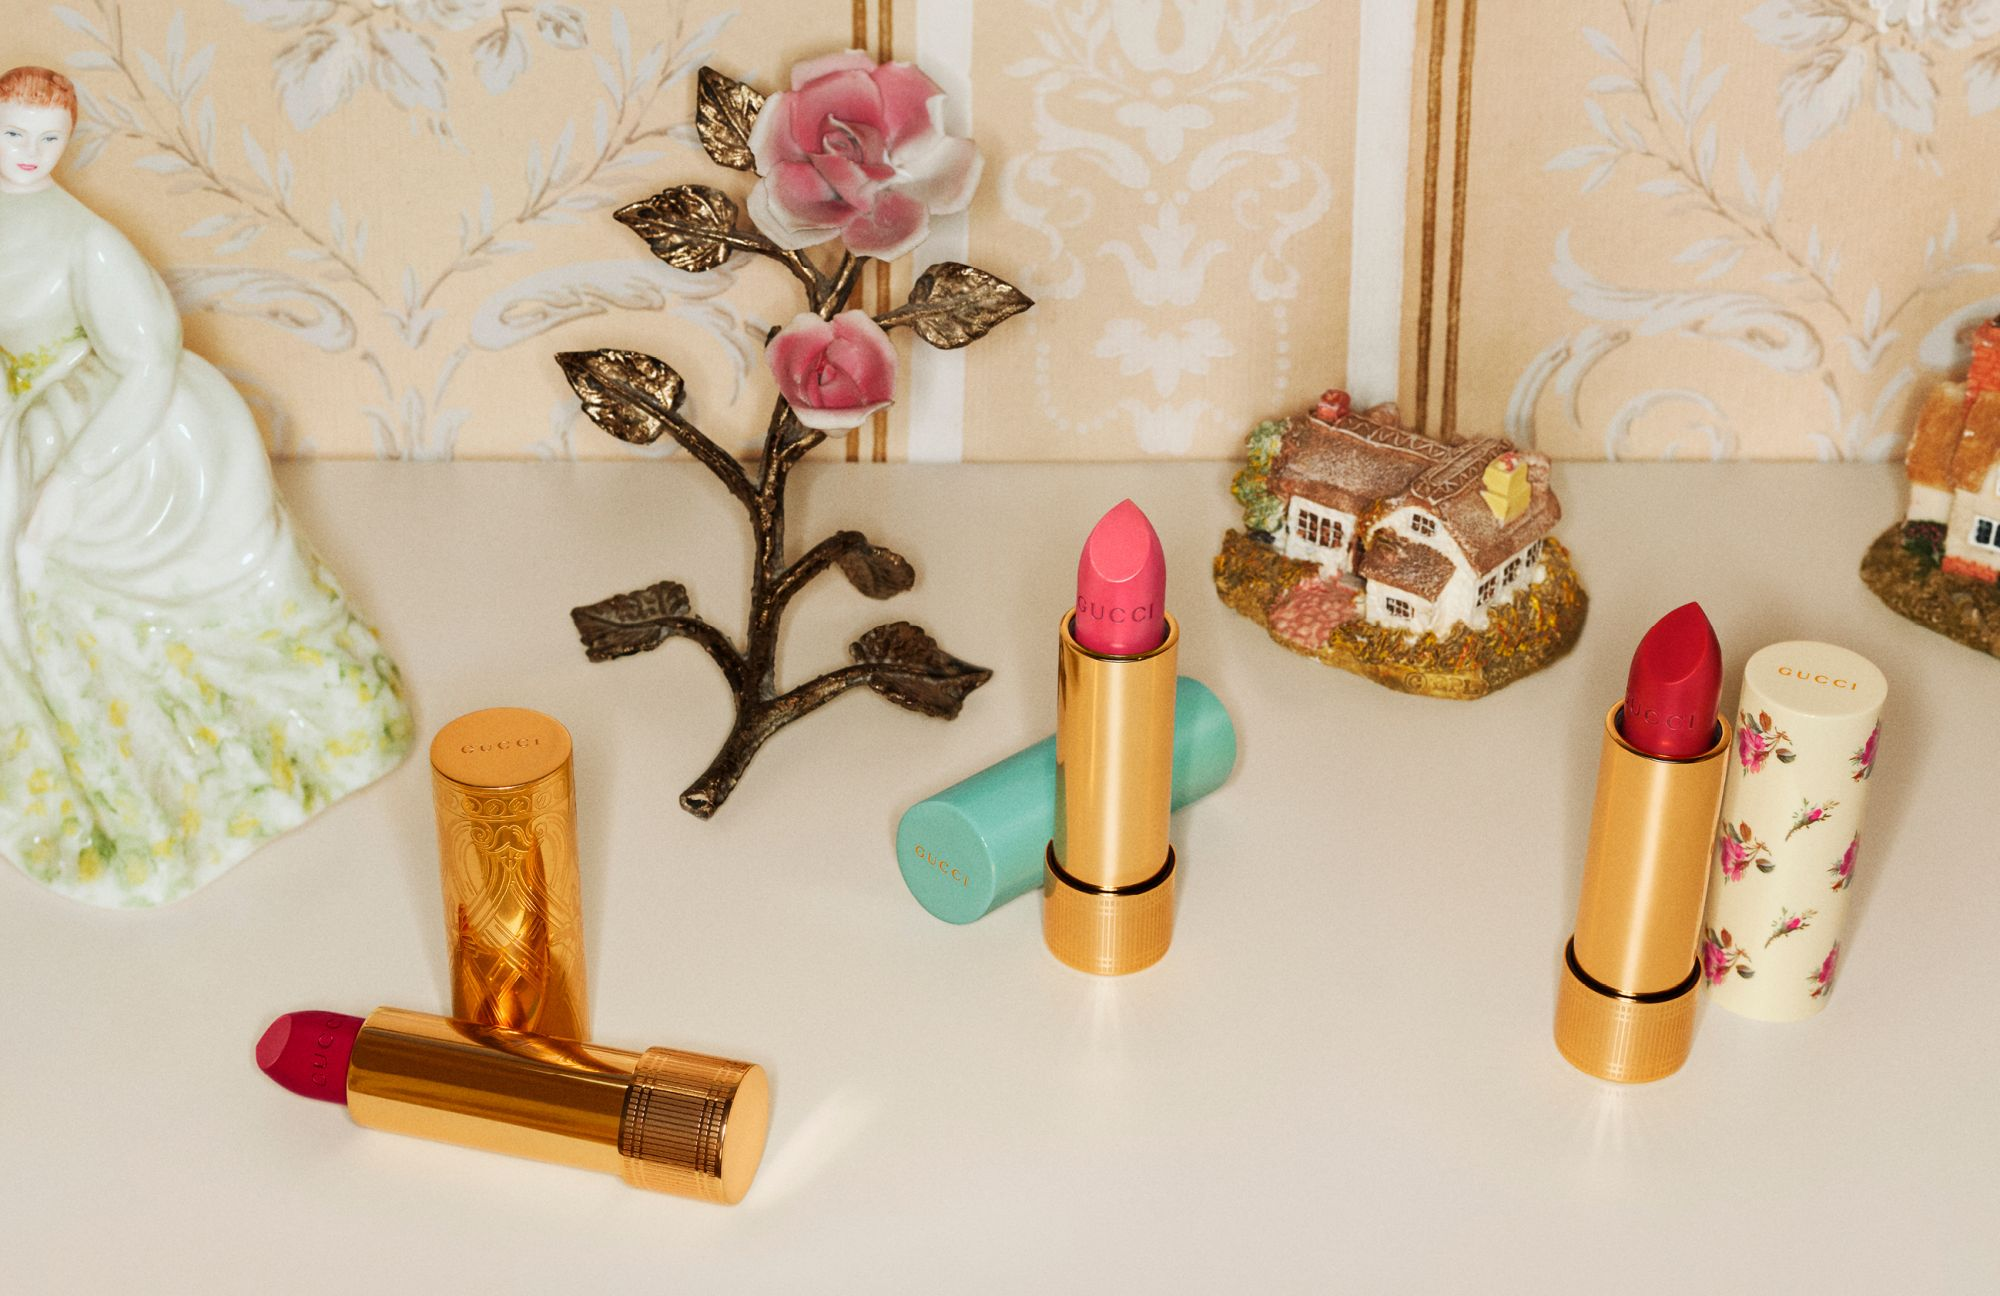 Gucci Beauty Launches In Singapore Next Month: Here Are 4 Must-Haves